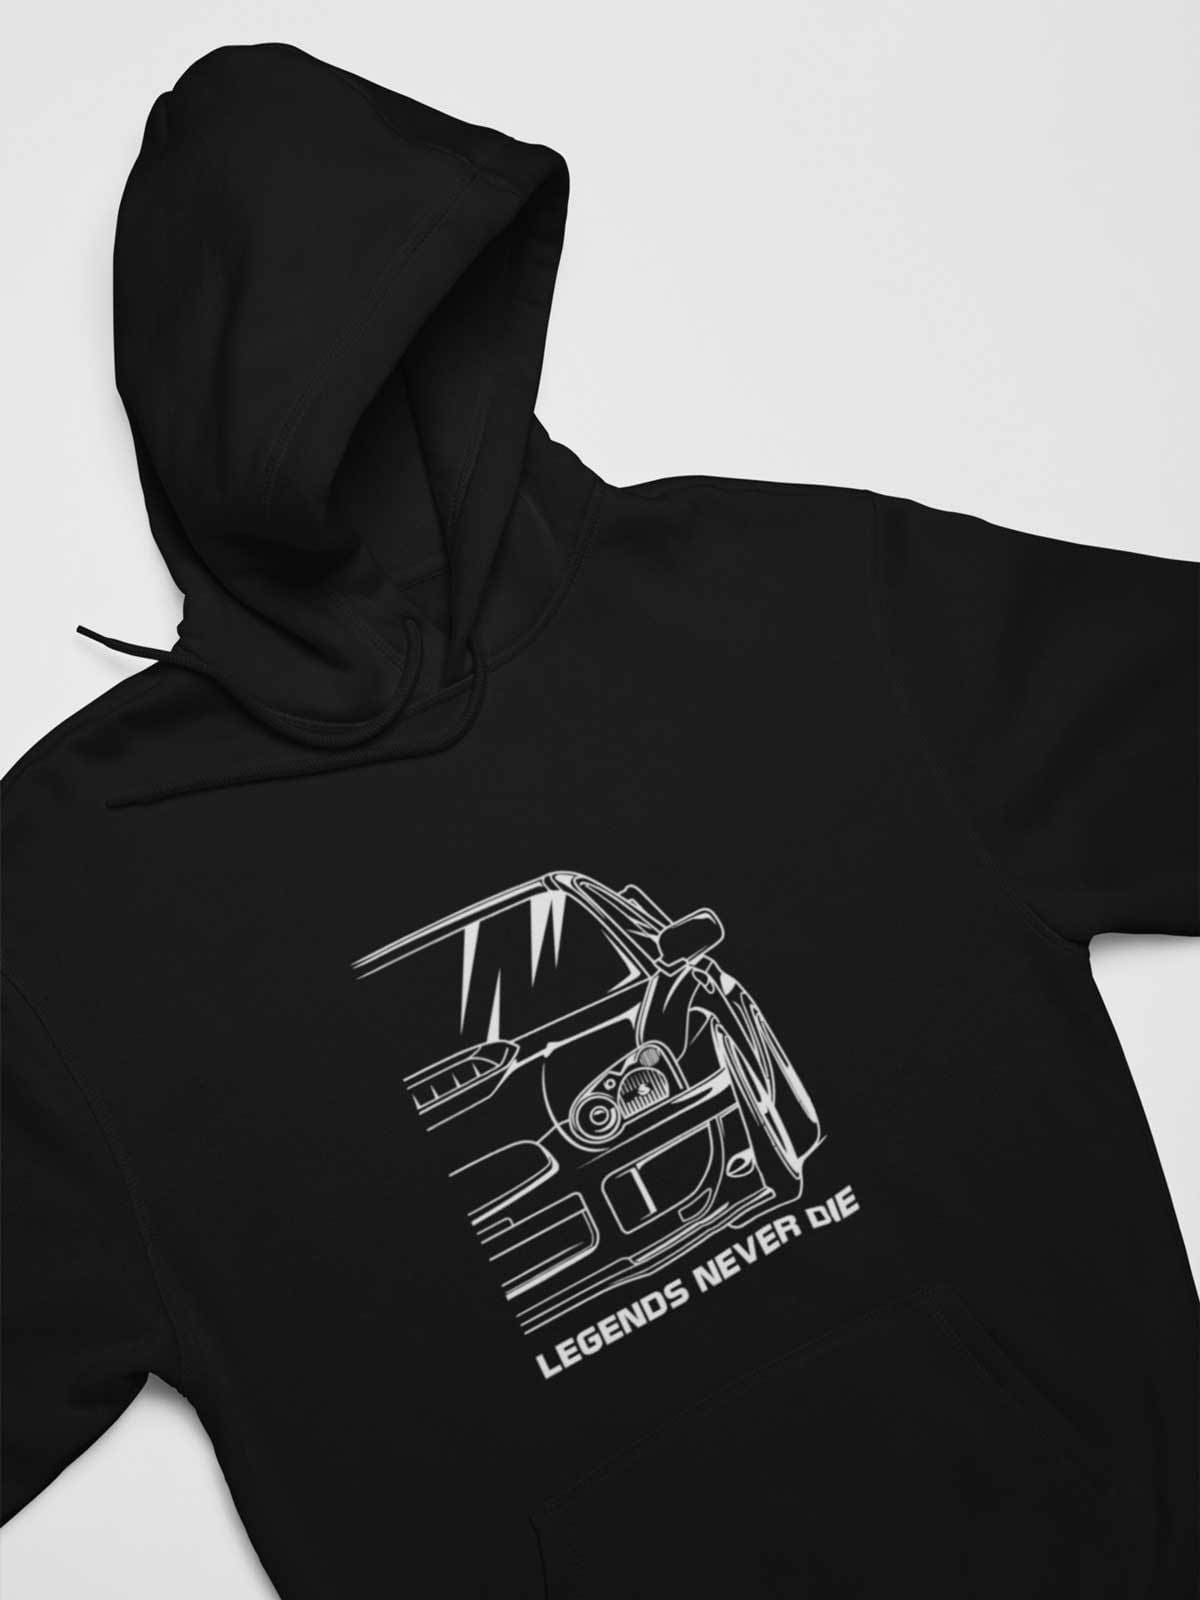 Subie Legends Never Die - Car Hoodie